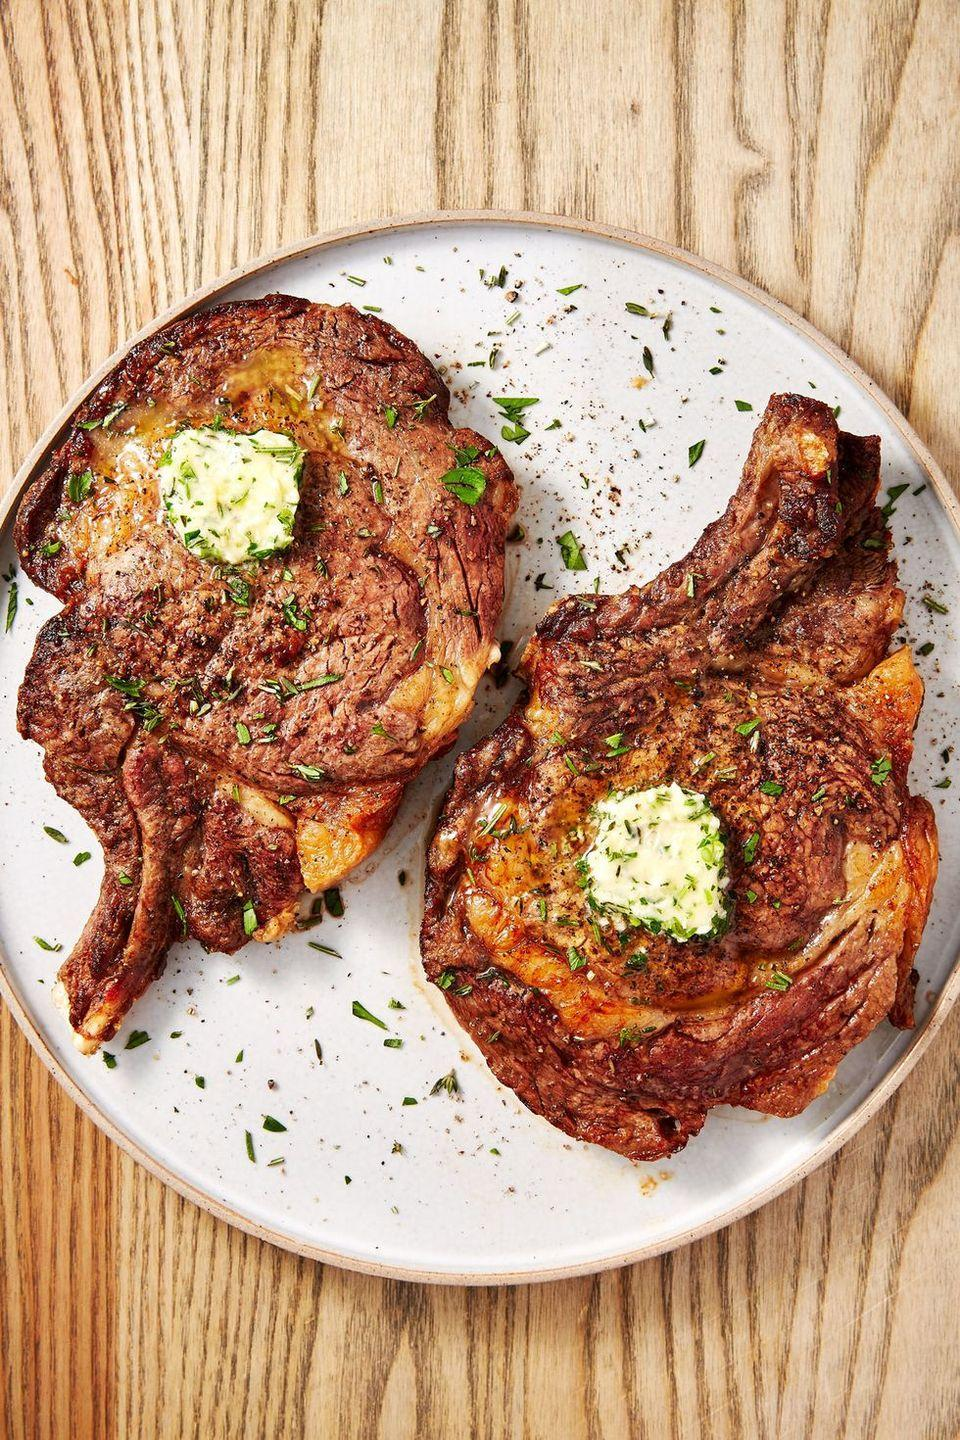 """<p>A <a href=""""https://www.delish.com/uk/cooking/recipes/a30252481/how-to-pan-fry-steak/"""" rel=""""nofollow noopener"""" target=""""_blank"""" data-ylk=""""slk:perfectly seared steak"""" class=""""link rapid-noclick-resp"""">perfectly seared steak</a> can seem like a daunting task. Getting the golden, crusty sear on the outside and trying not to overcook your steak can be difficult. </p><p>What if we told you that your air fryer can take all of that stress away? It's true! Leave it to the air fryer to cook a perfect piece of steak all without filling your kitchen with smoke or turning on the grill. As for the herb butter? It's not mandatory, but it sure is delicious. </p><p>Get the <a href=""""https://www.delish.com/uk/cooking/recipes/a32284104/air-fryer-steak-recipe/"""" rel=""""nofollow noopener"""" target=""""_blank"""" data-ylk=""""slk:Air Fryer Steak"""" class=""""link rapid-noclick-resp"""">Air Fryer Steak</a> recipe.</p>"""